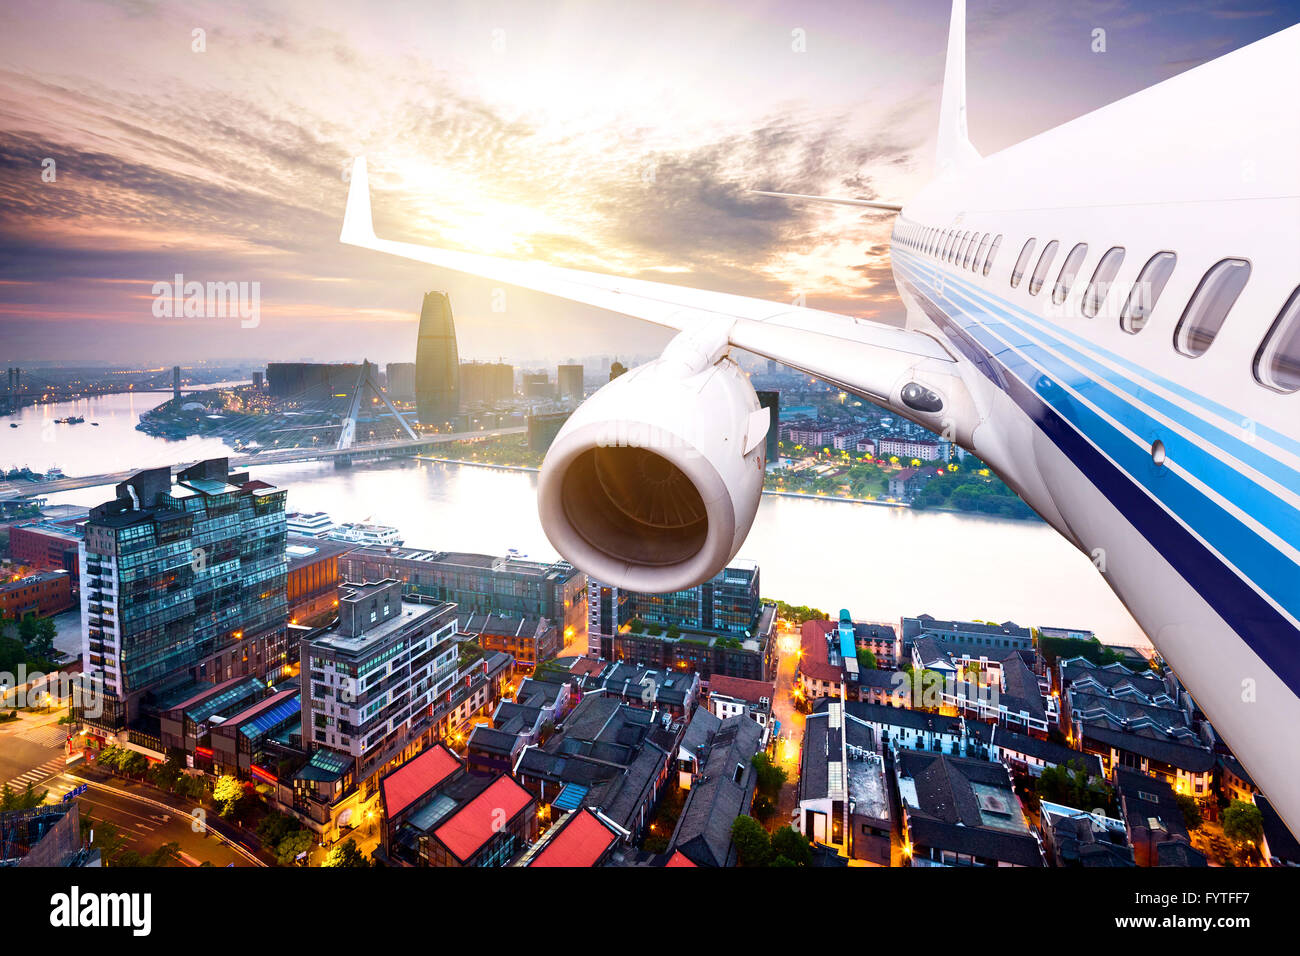 skyscape and cityscape at dusk from plane - Stock Image